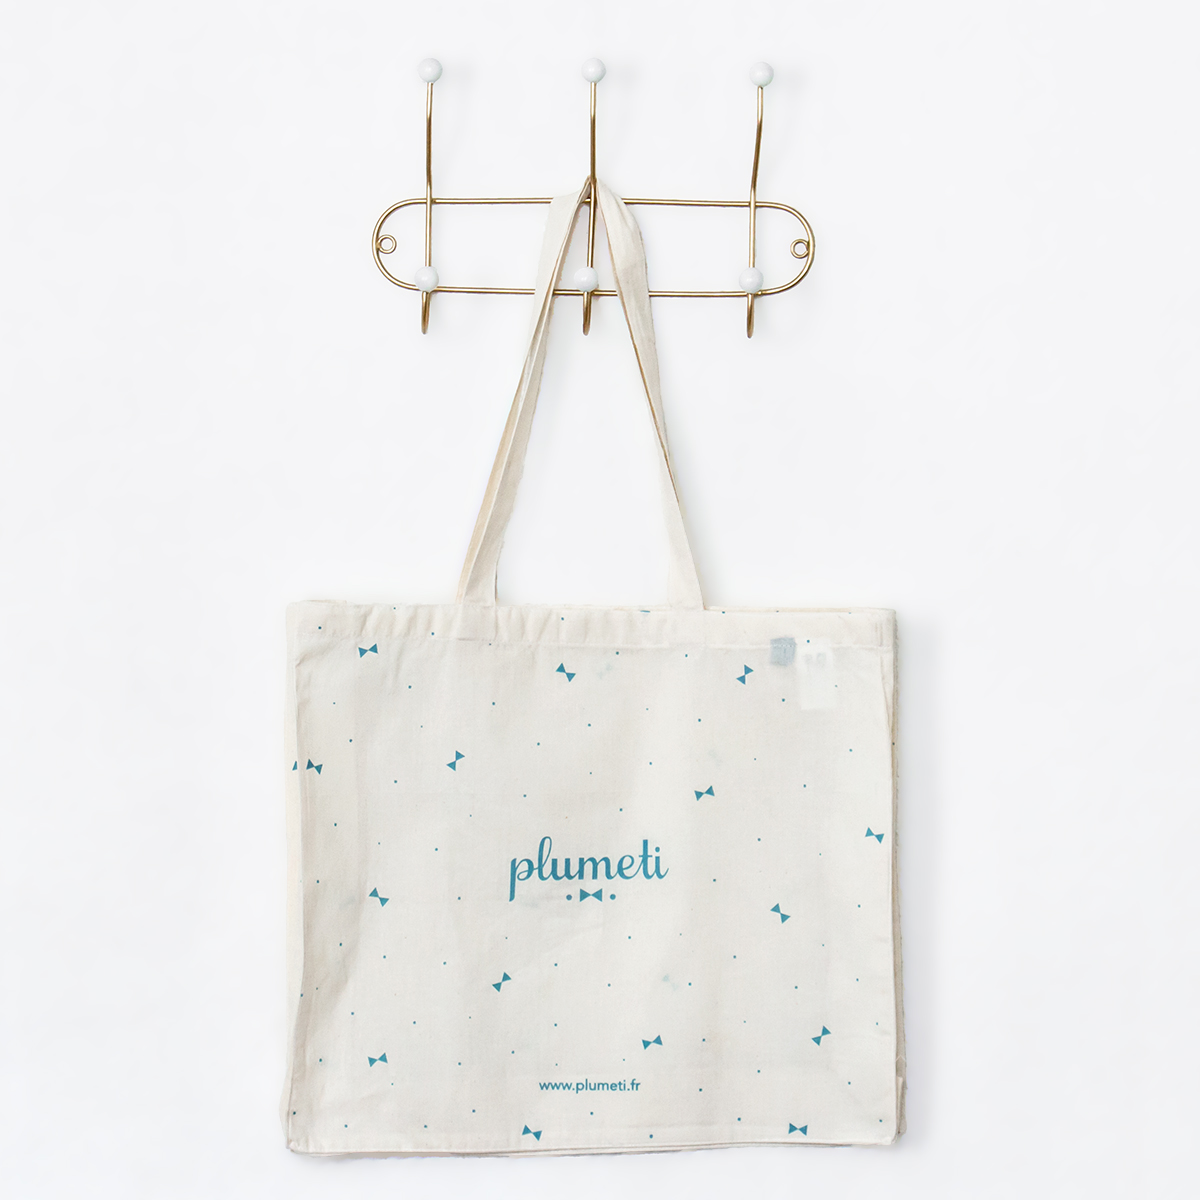 Design tote bag Plumeti - Illustration - Corporate - Design produit - Charlène Roudier